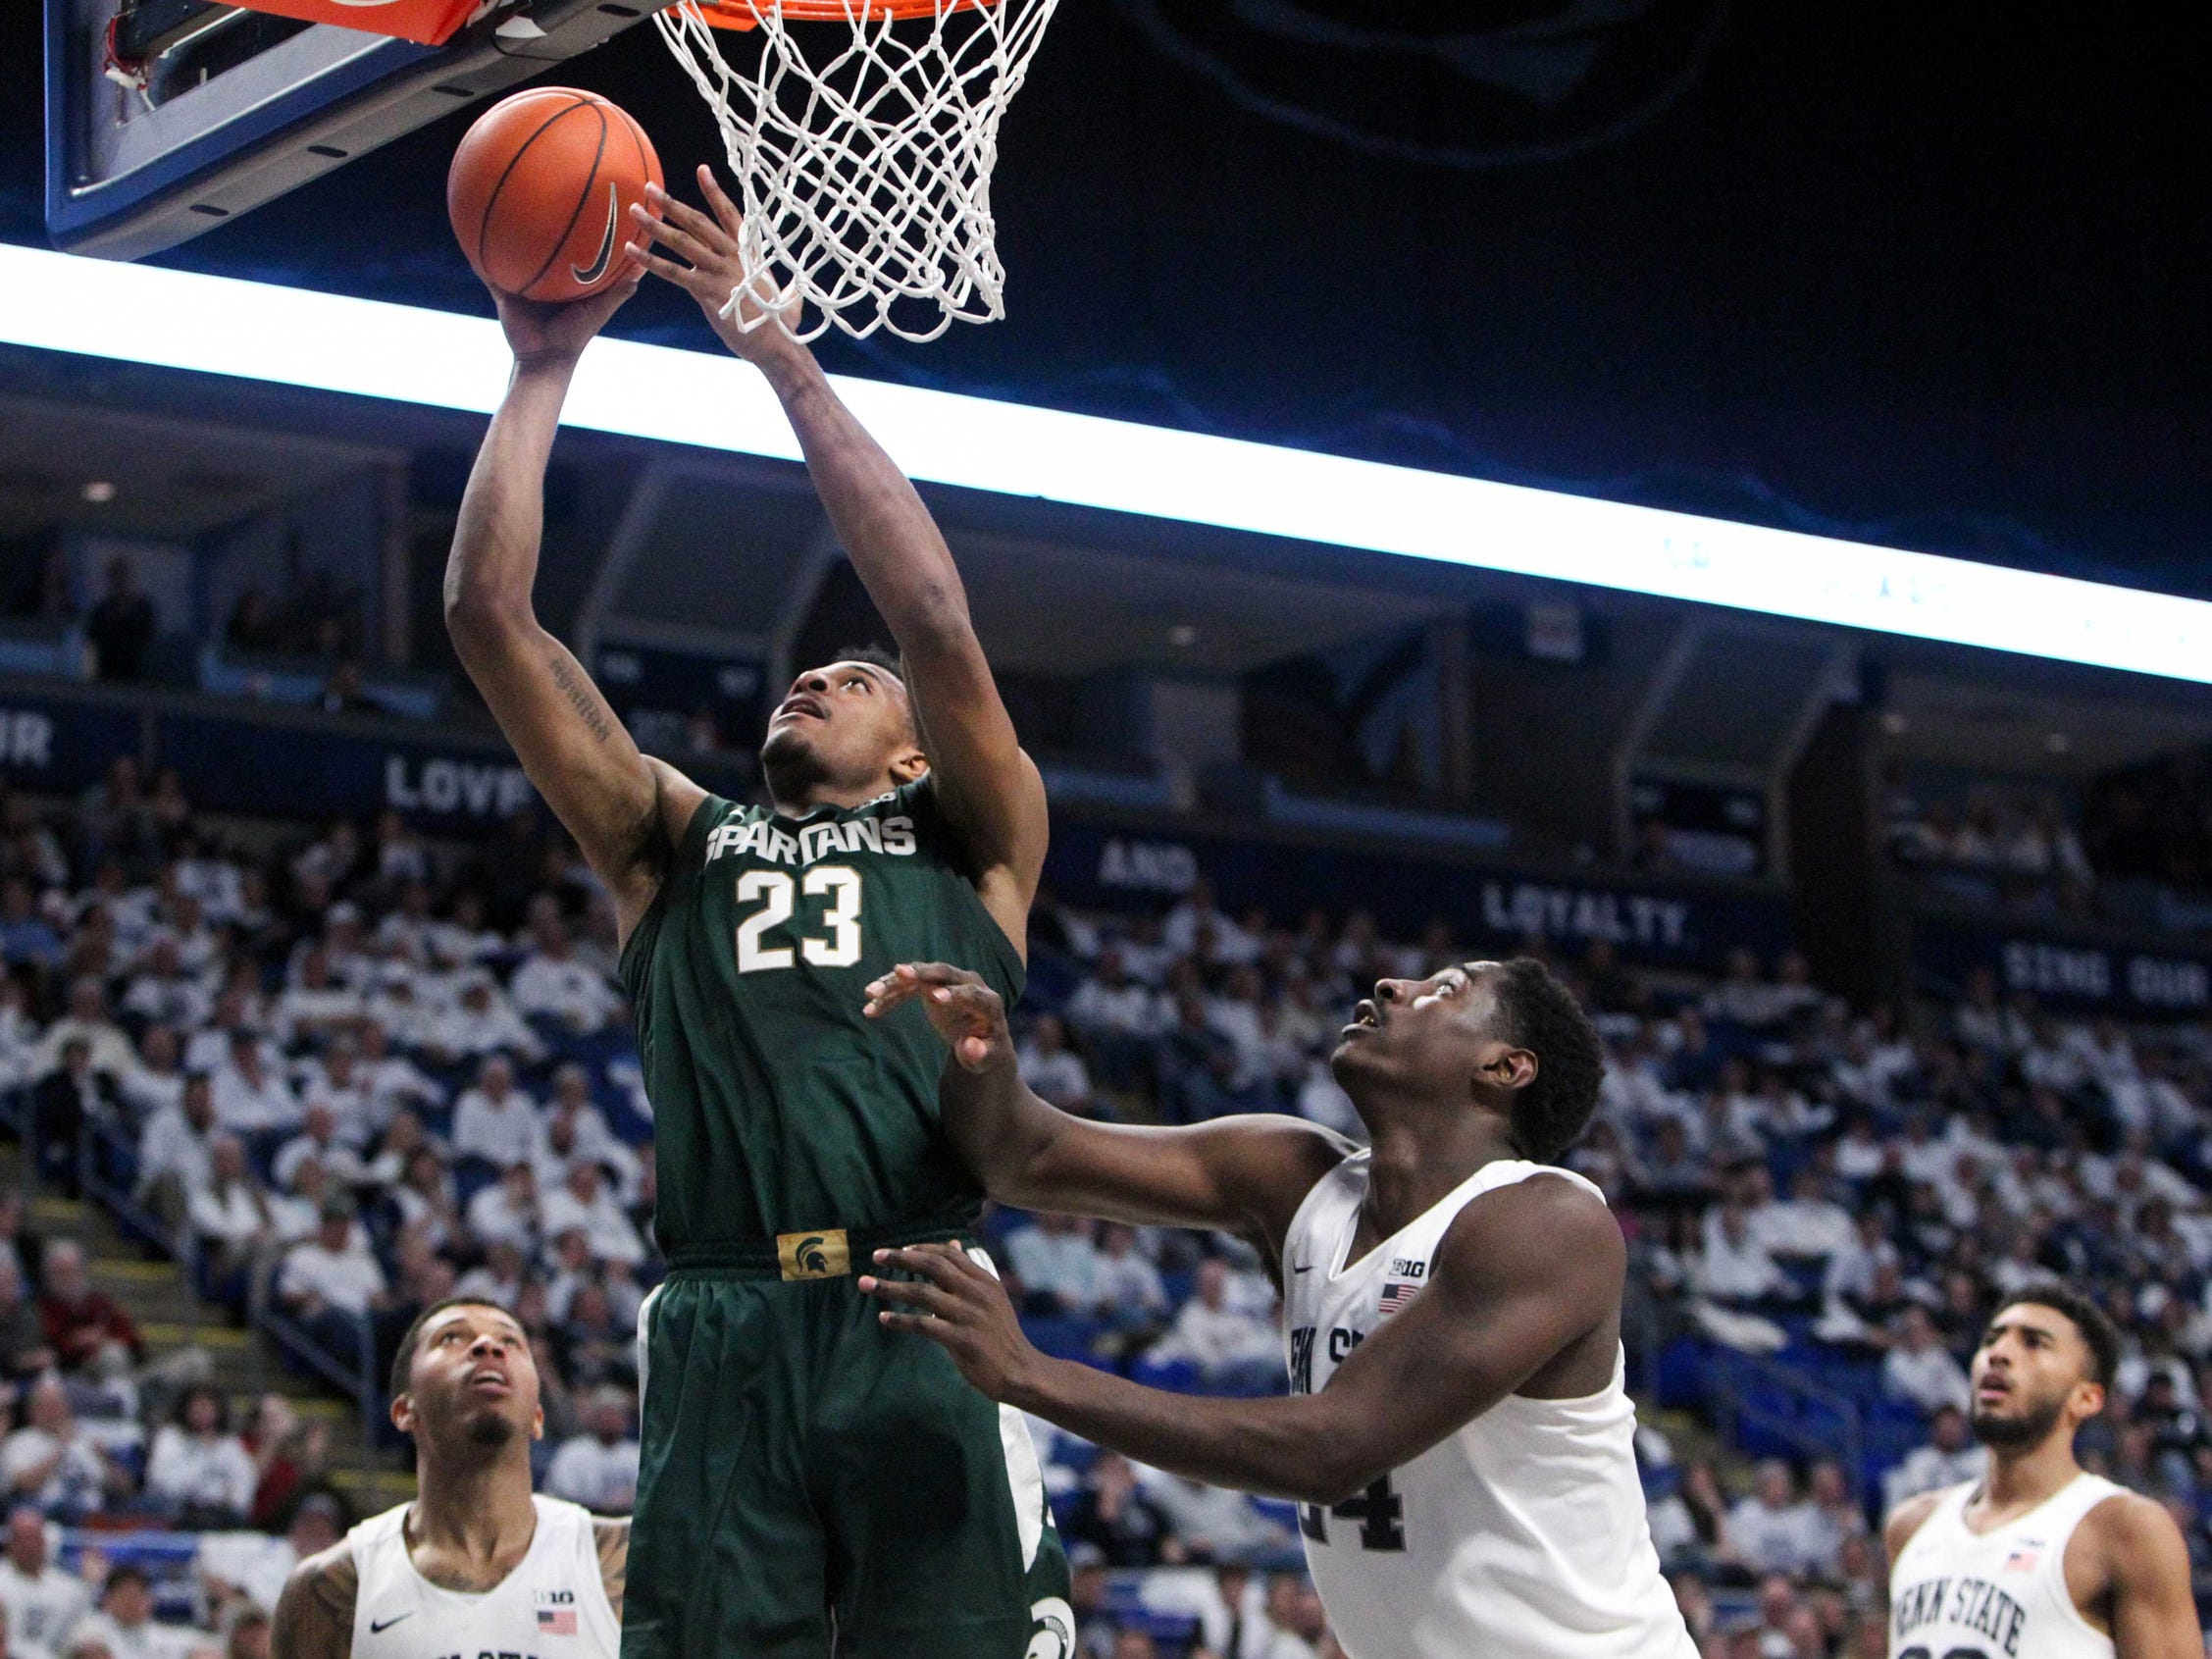 Michigan State forward Xavier Tillman shoots against Penn State during the second half in State College, Pa. Sunday, Jan. 13, 2019.